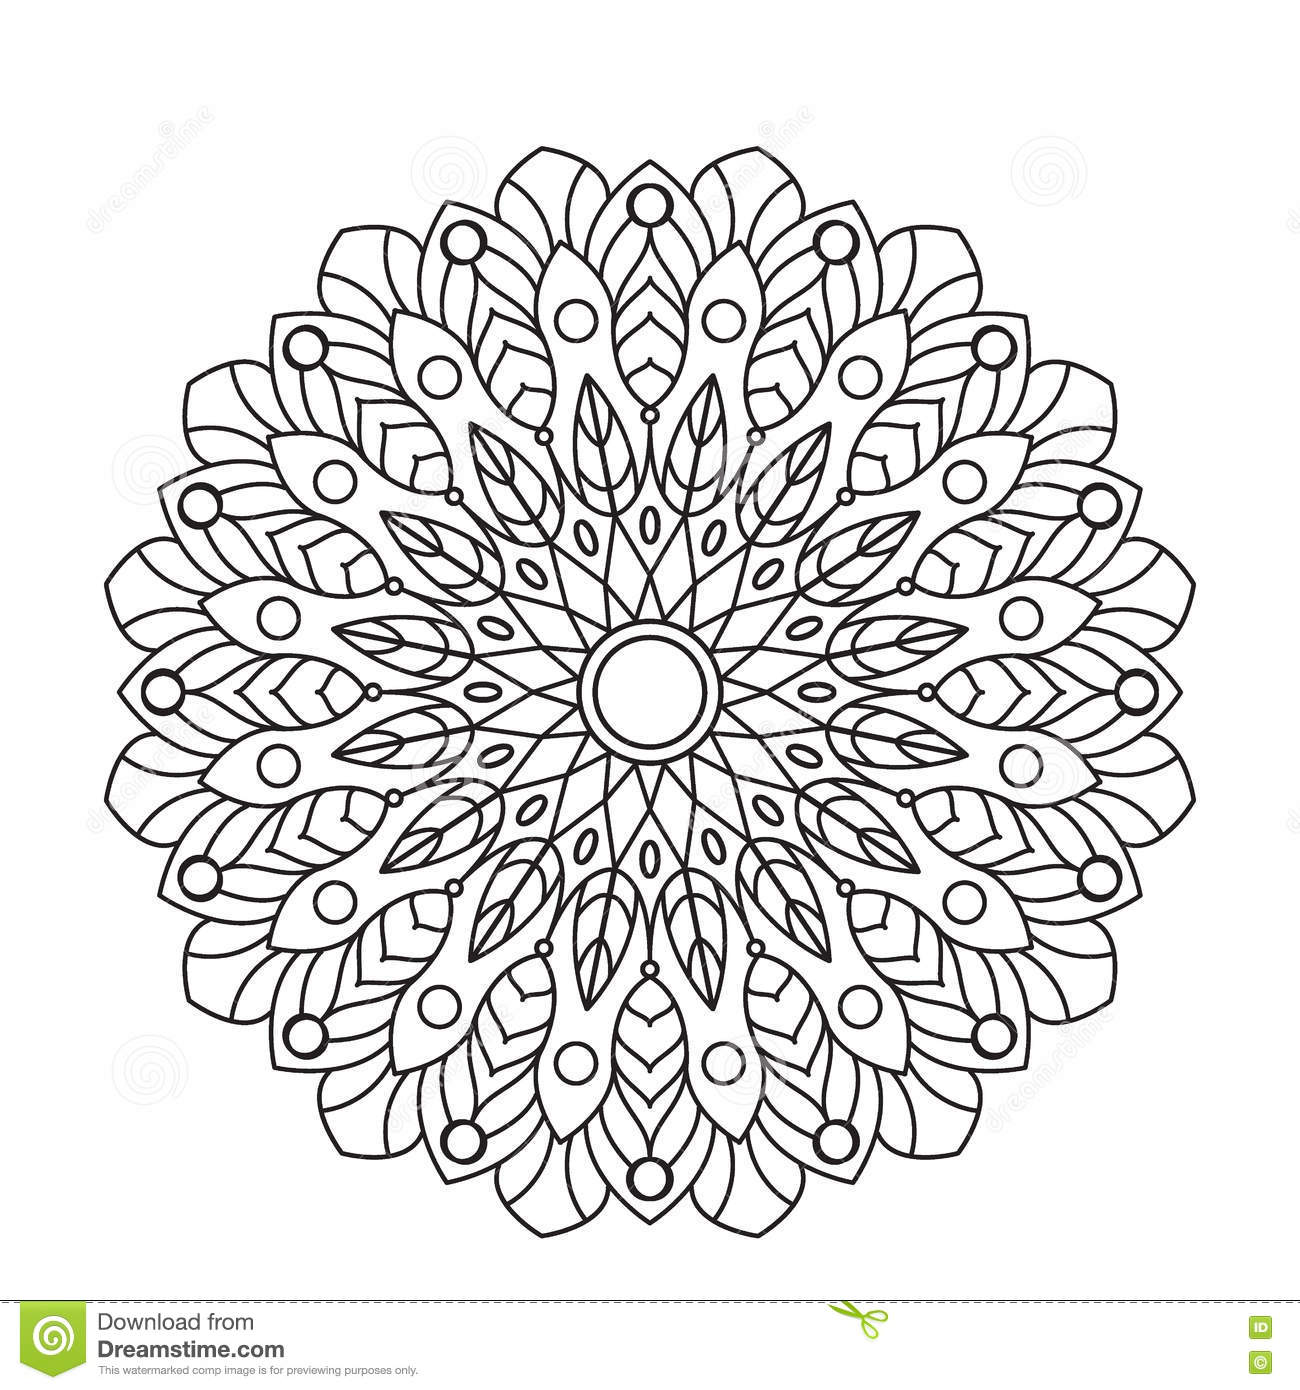 Stock Photo Coloring Book Mandala Circle Lace Ornament Round Ornamental Pattern Black White Design Vector Page Image74317965 as well Free Black Capped Chichadee Pattern additionally Stock Illustration Elements Time Tea Orient Floral Black White Ornament Heart Shape Cups Teapot Cake Cupcakes Best Your Image65085306 further Stock Illustration Zentangle Parrot Nest Hand Drawn Vector Stylized Illustration Sketch Tattoo Coloring Makhenda Bird Collection Image63794284 as well Sunflower Mosaic Pattern. on flower mosaic patterns